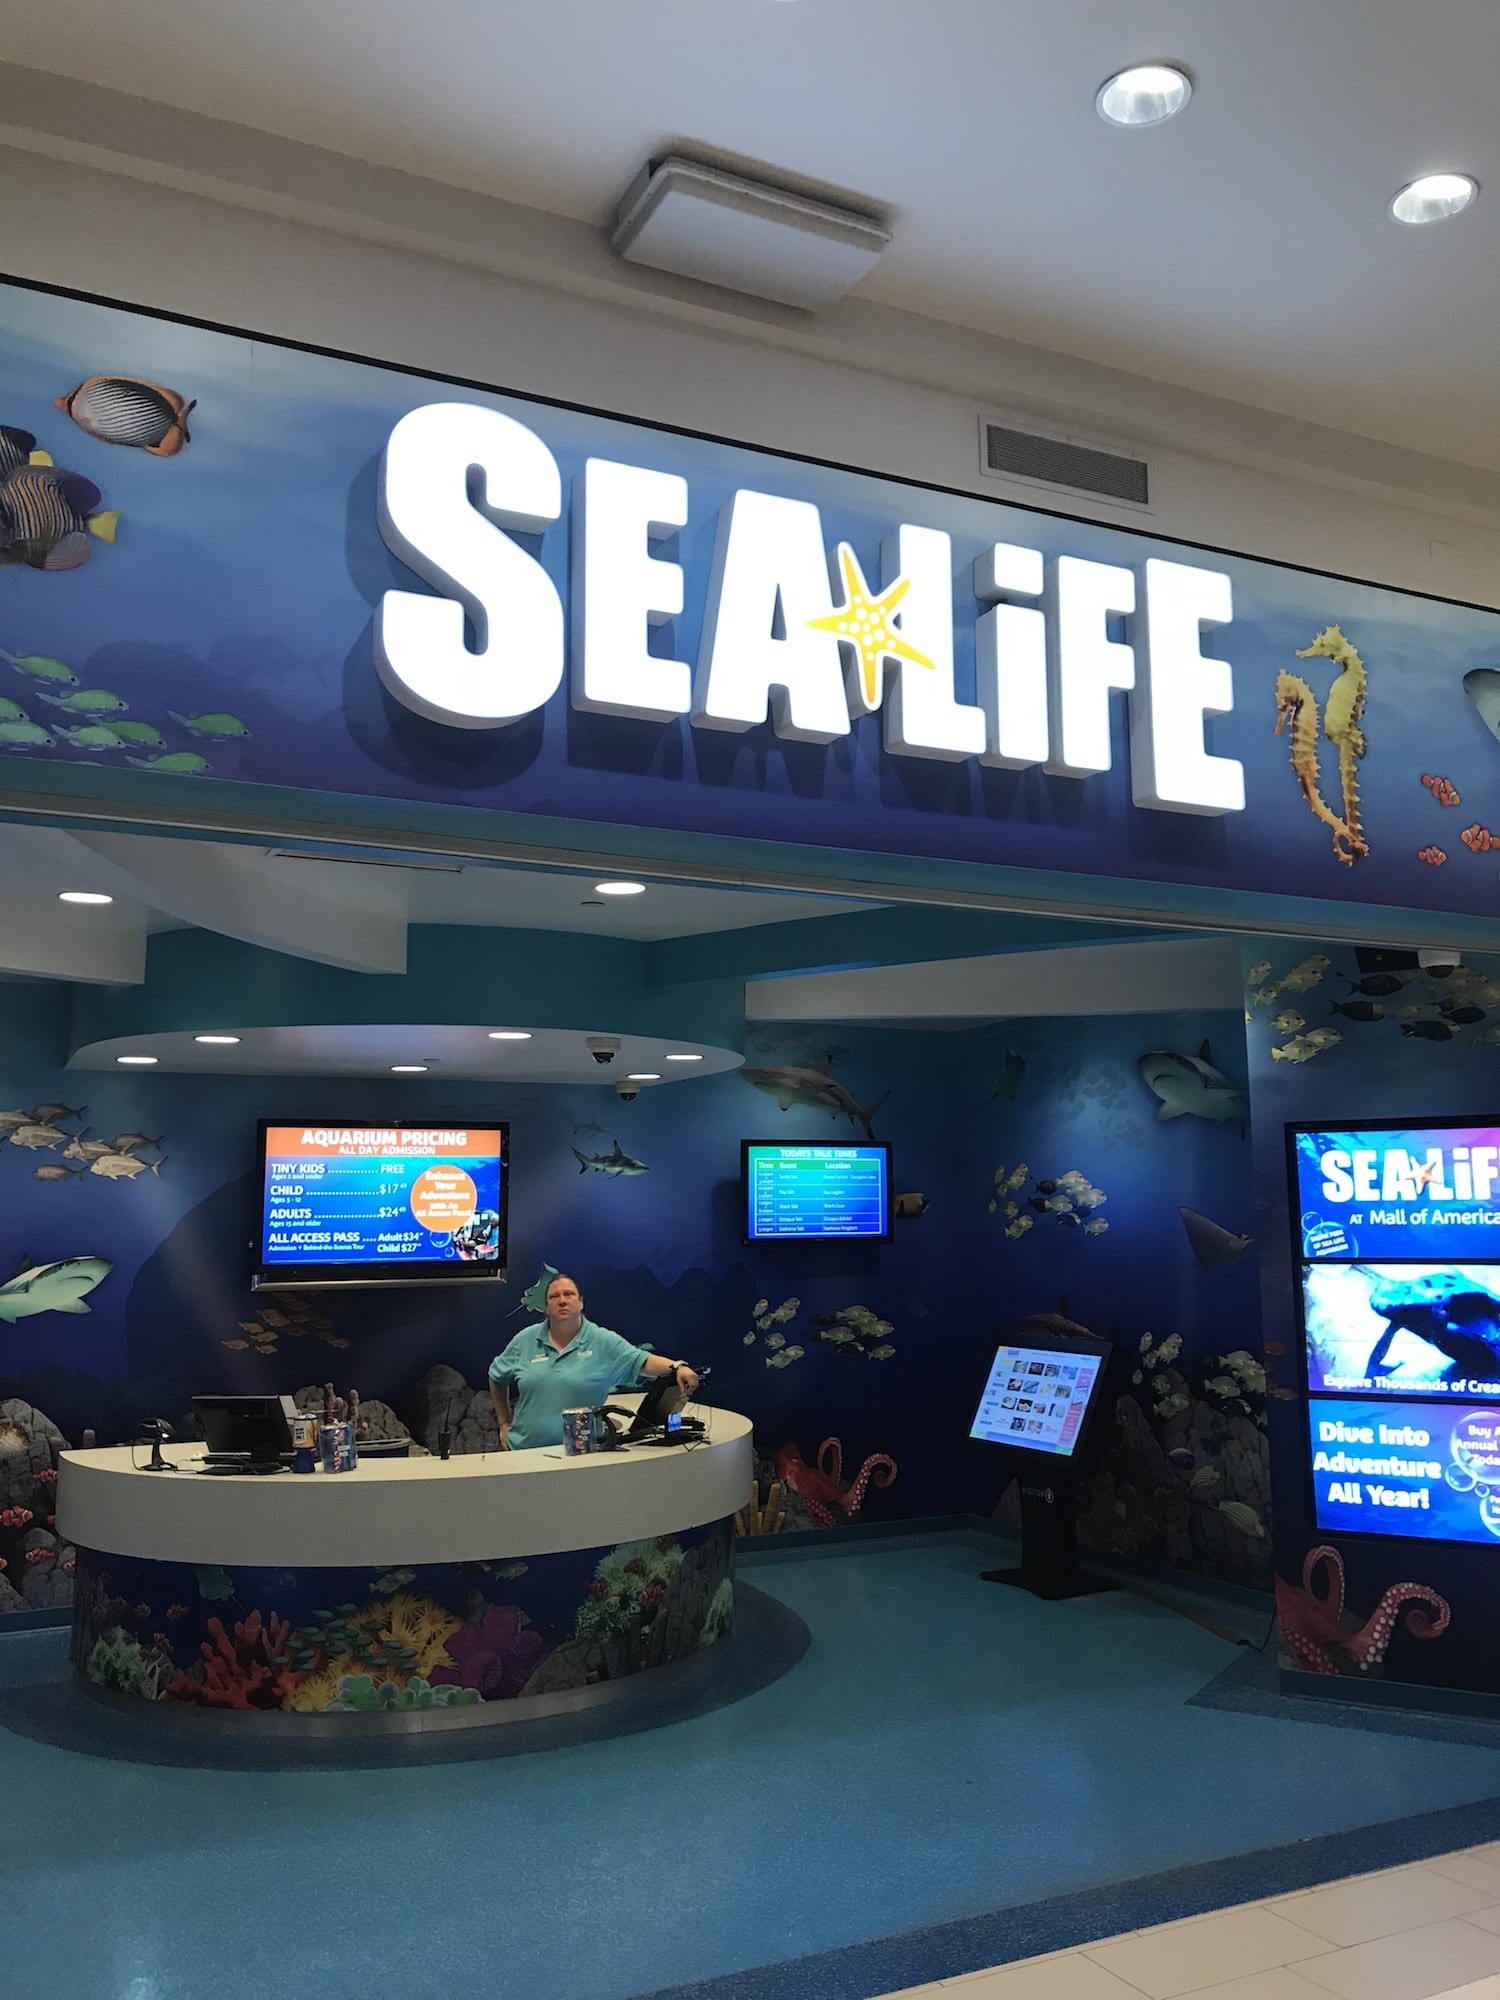 SEALIFE at Mall of America